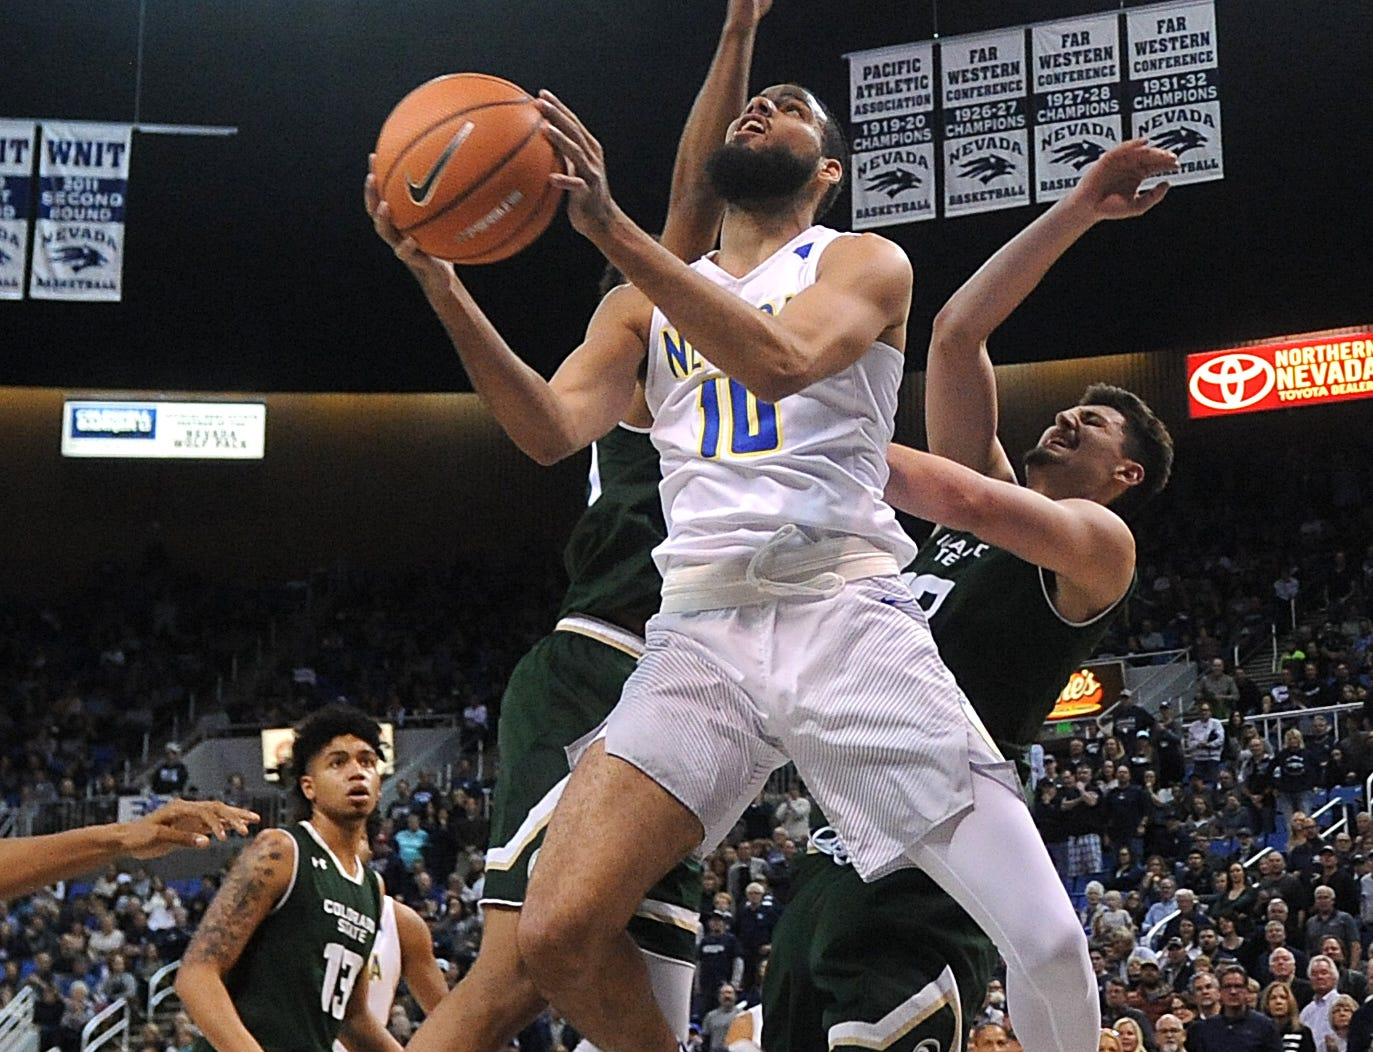 Nevada's Caleb Martin (10) drives to the basket while taking on Colorado State during their basketball game at Lawlor Events Center in Reno on Feb. 25, 2018.